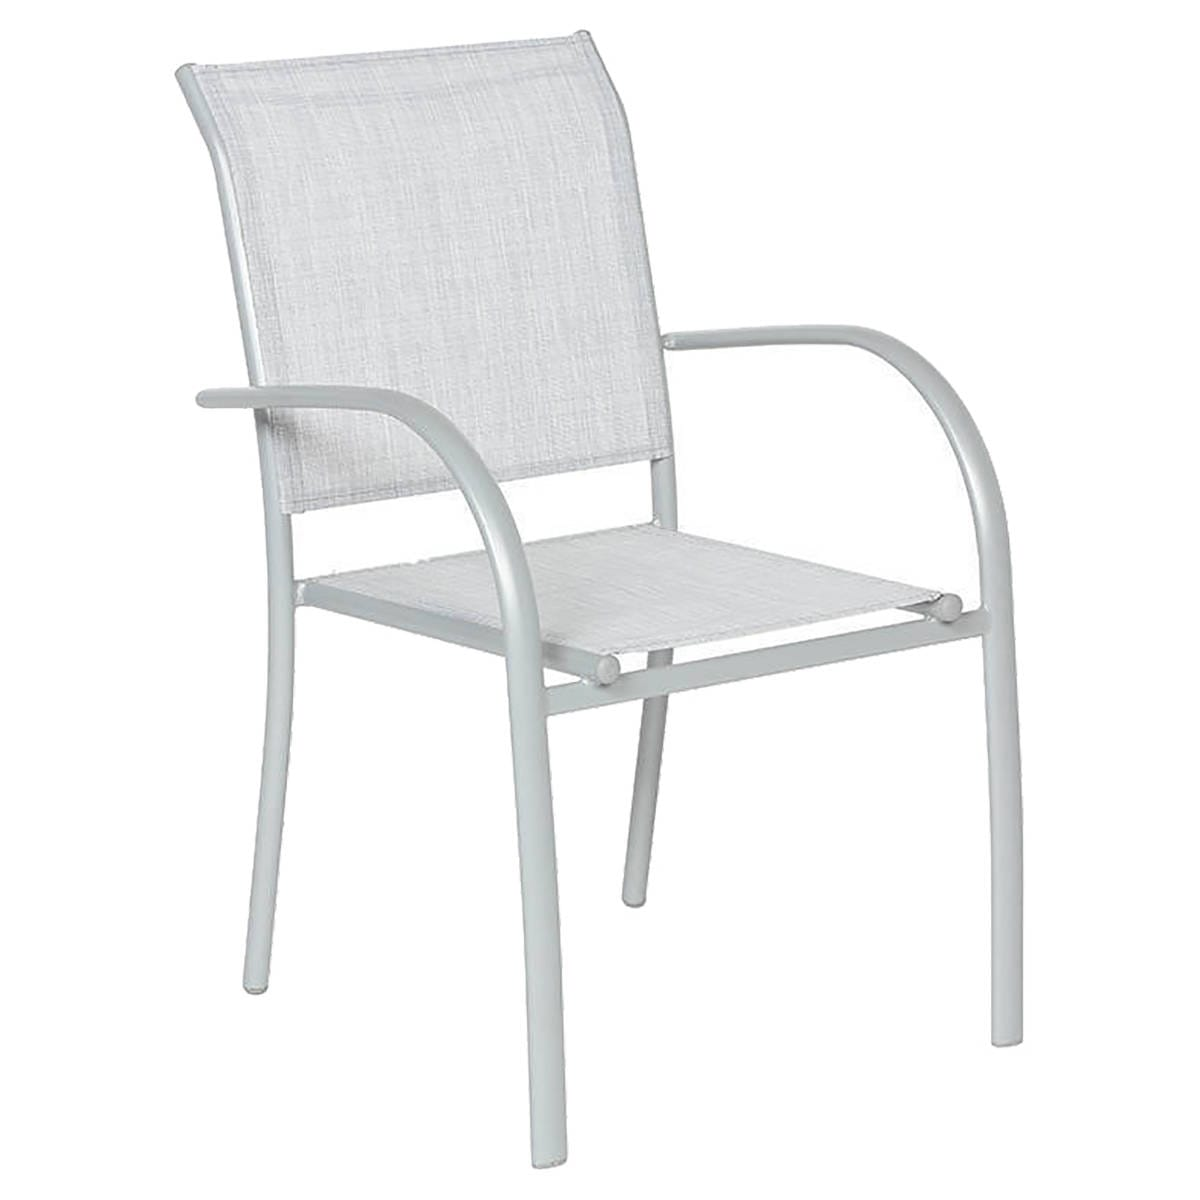 Fauteuil piazza galet chin hesp ride 1 place - Chaise de jardin solide ...